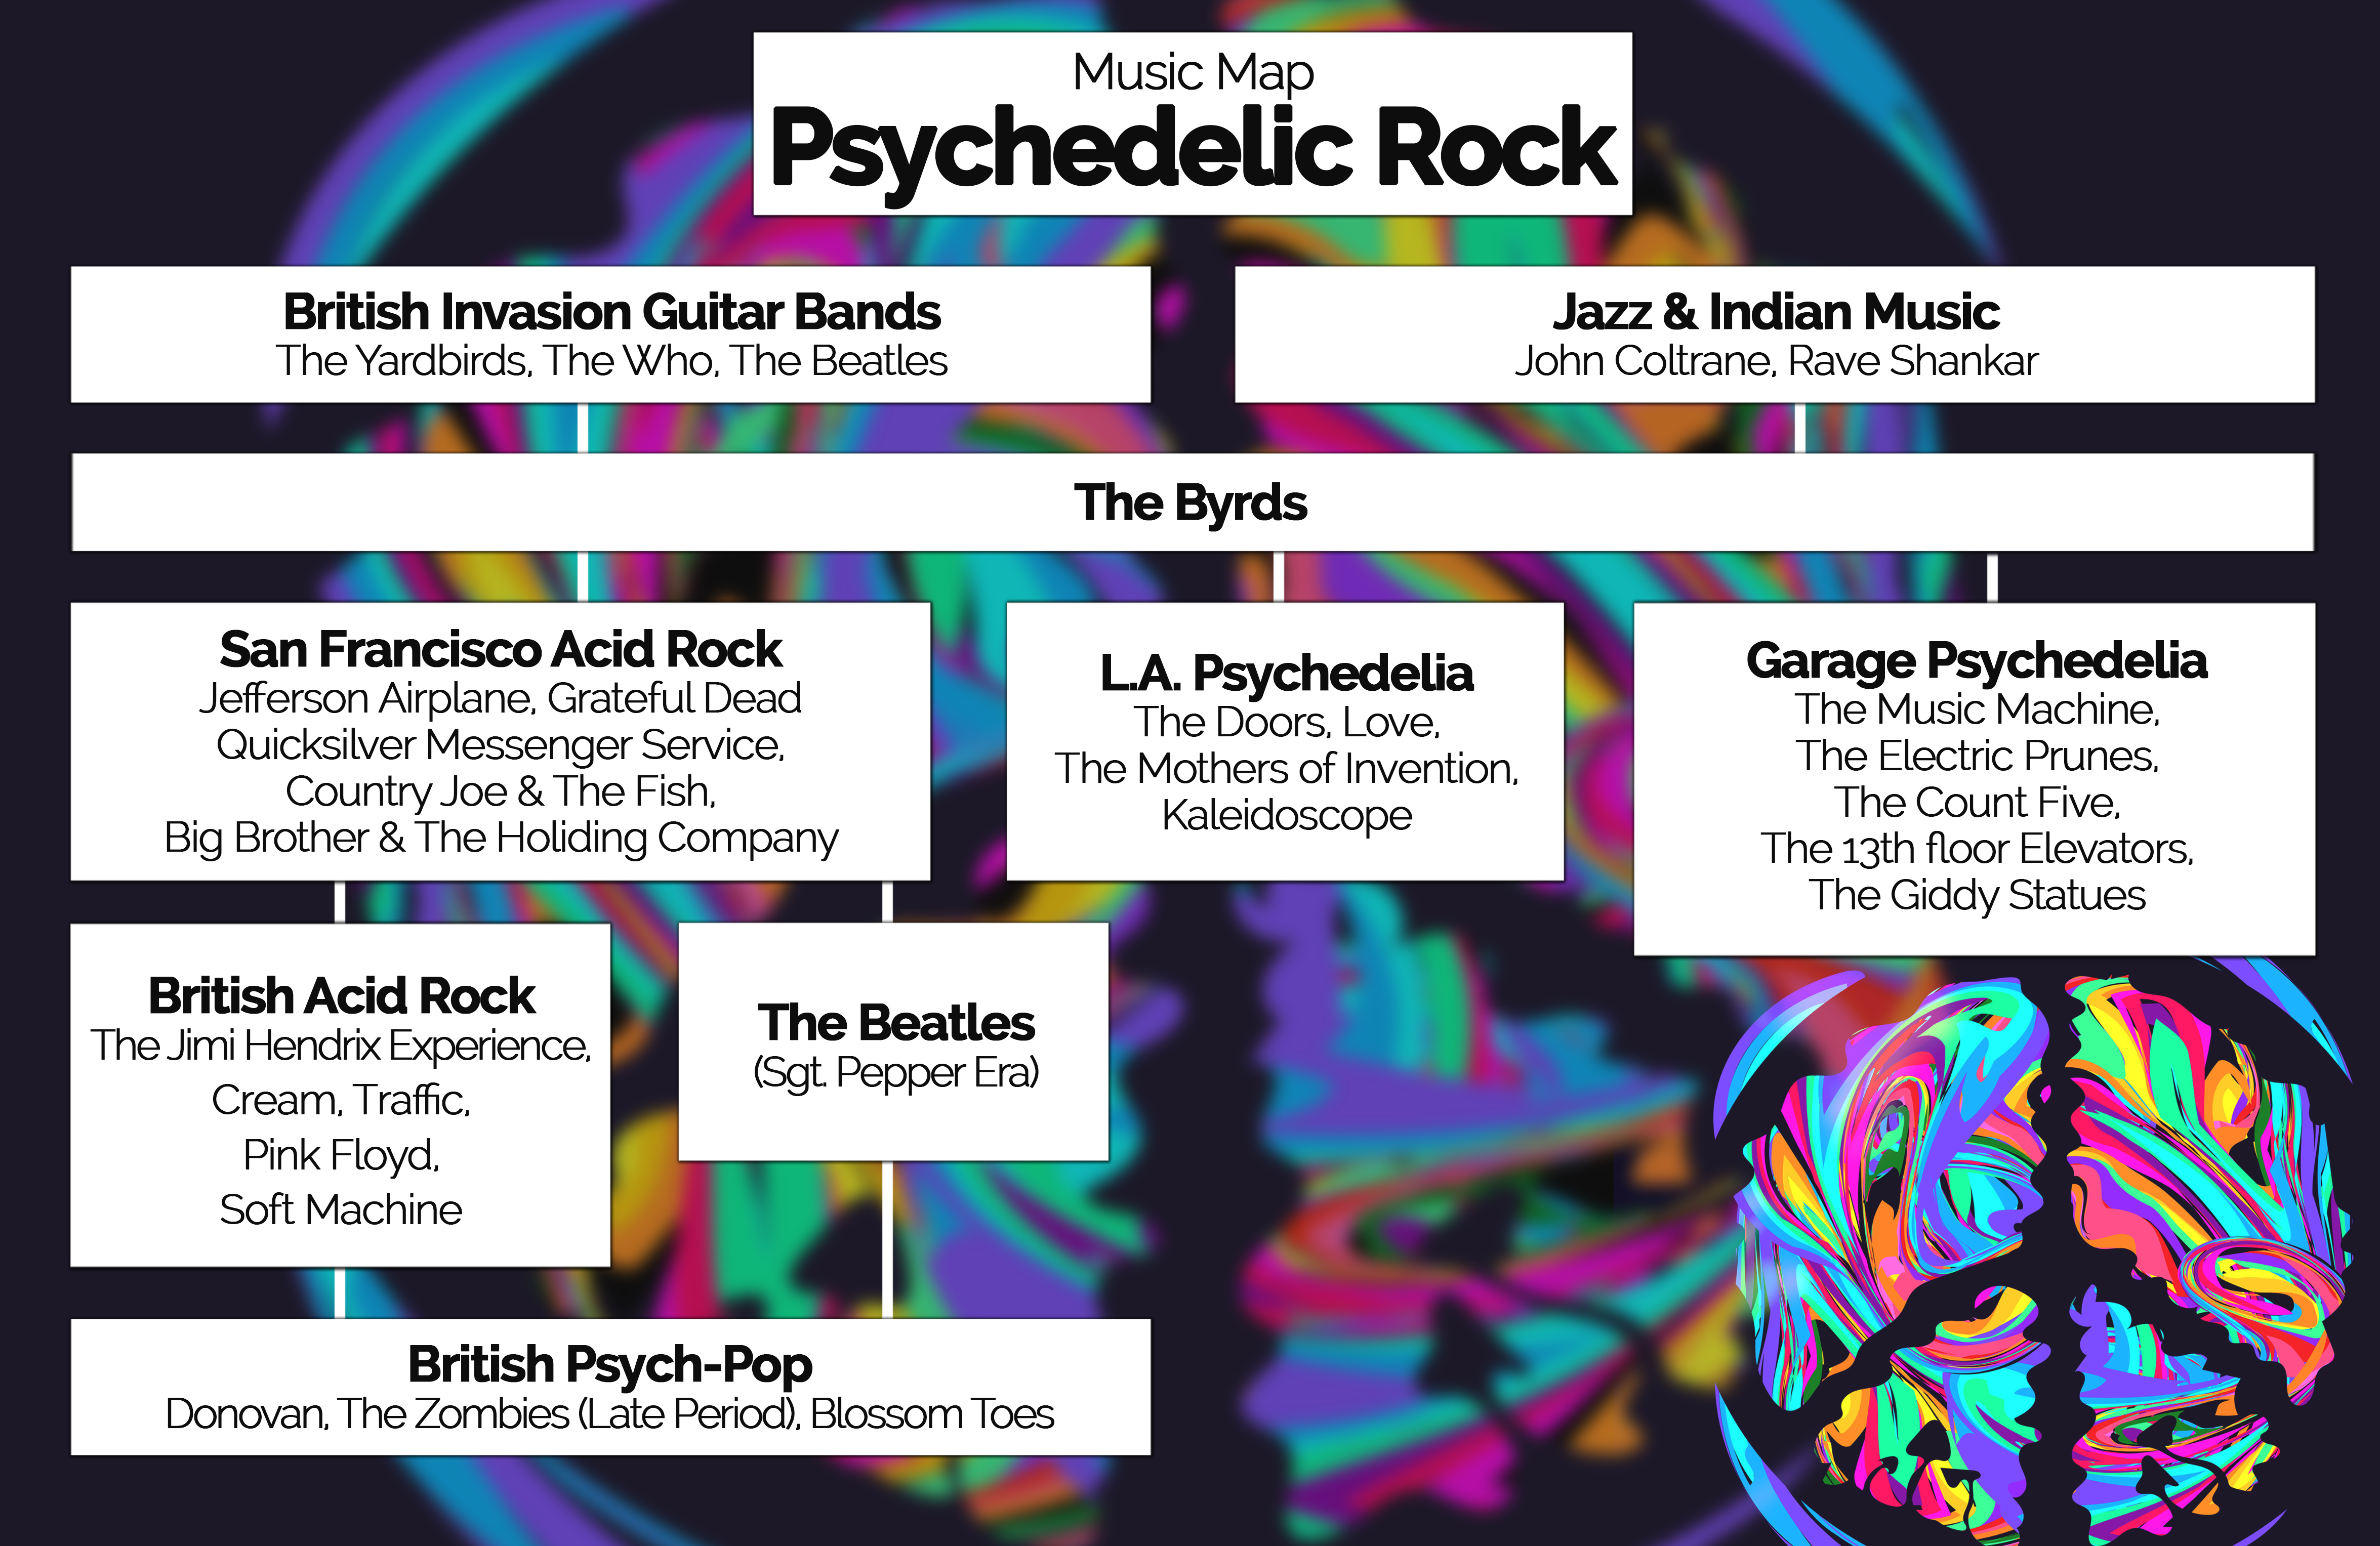 Music Map: PSYCHEDELIC ROCK